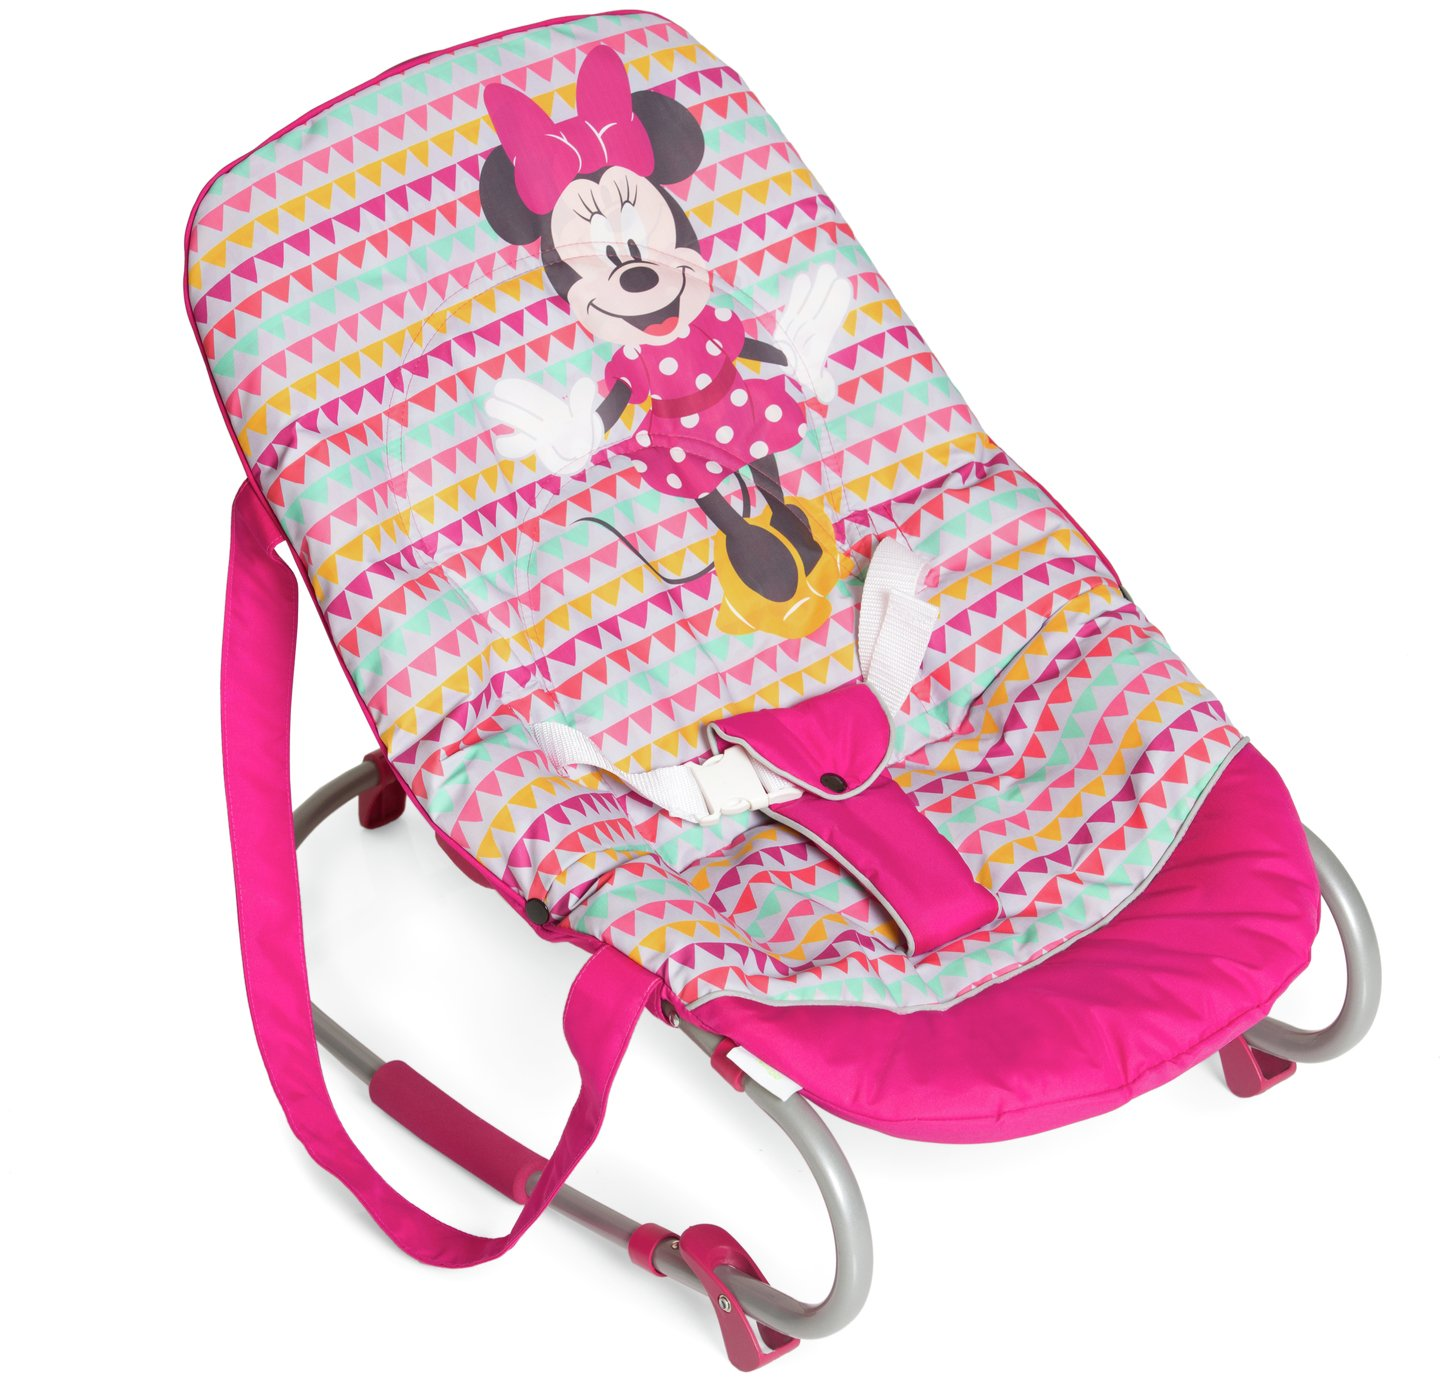 Disney Rocky Bouncer - Minnie Pink Best Price, Cheapest Prices